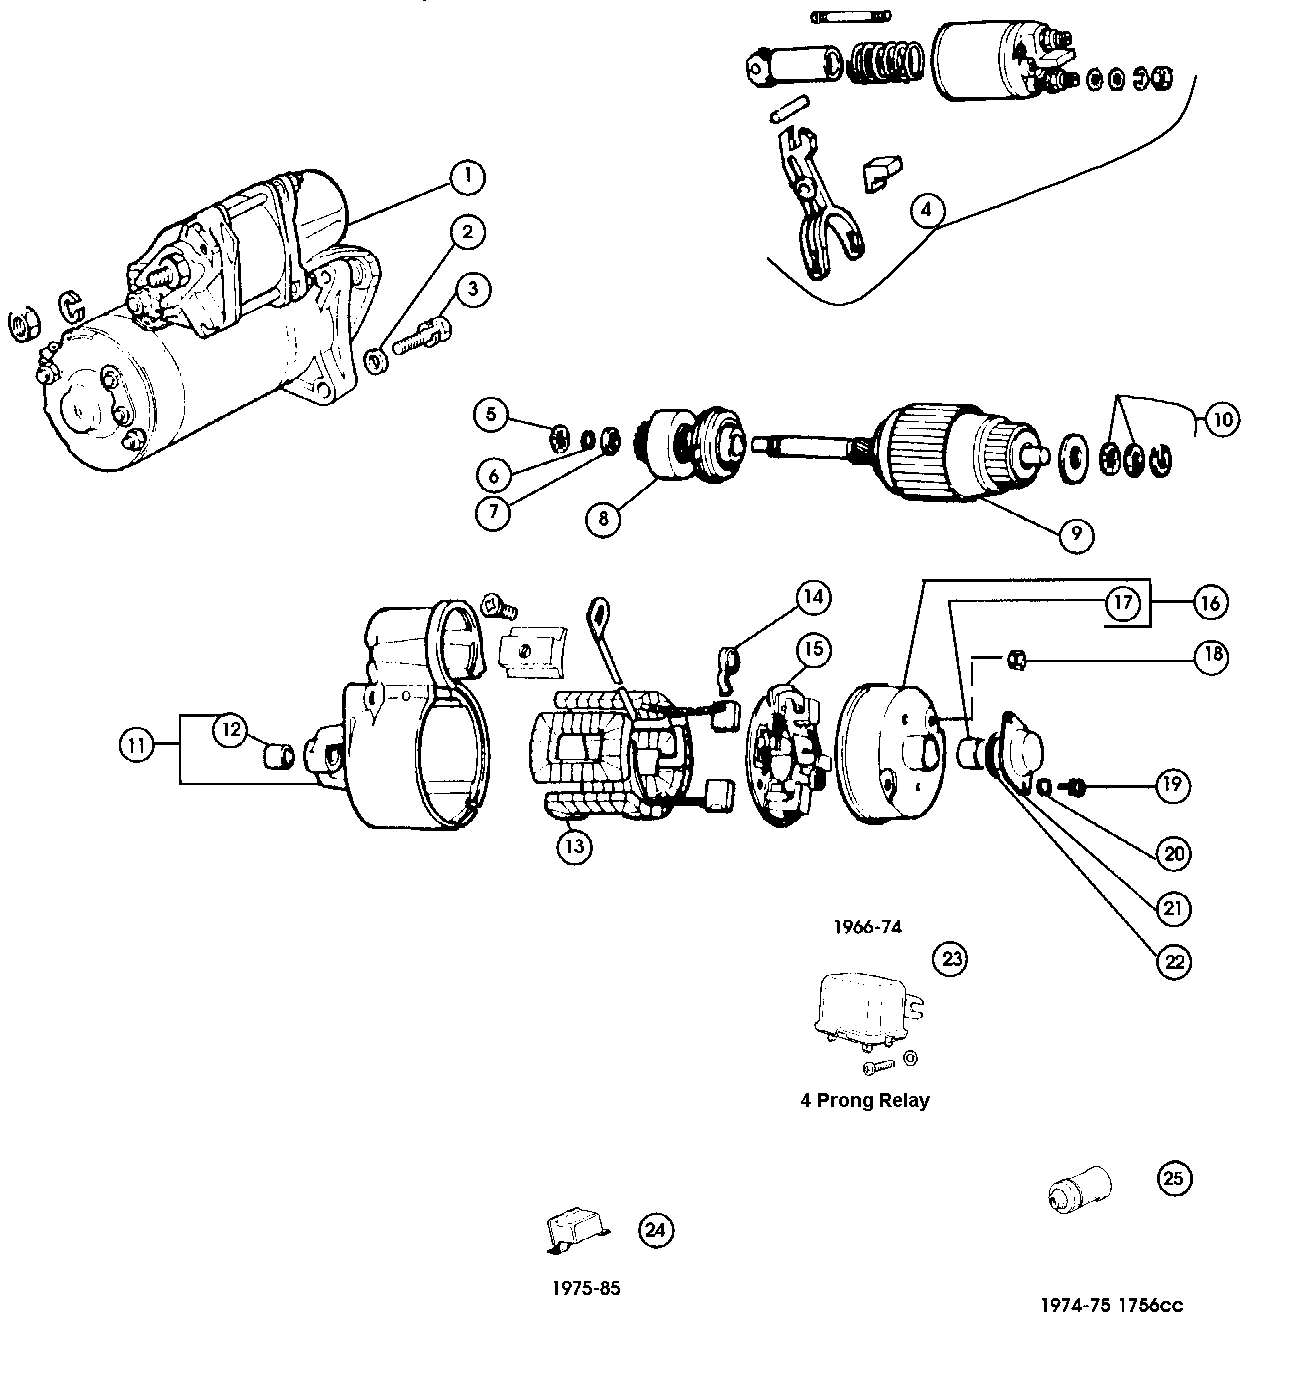 Fiat 124 Starter Motor Magneti Marelli No595702 500 And Fuel Pump Diagram